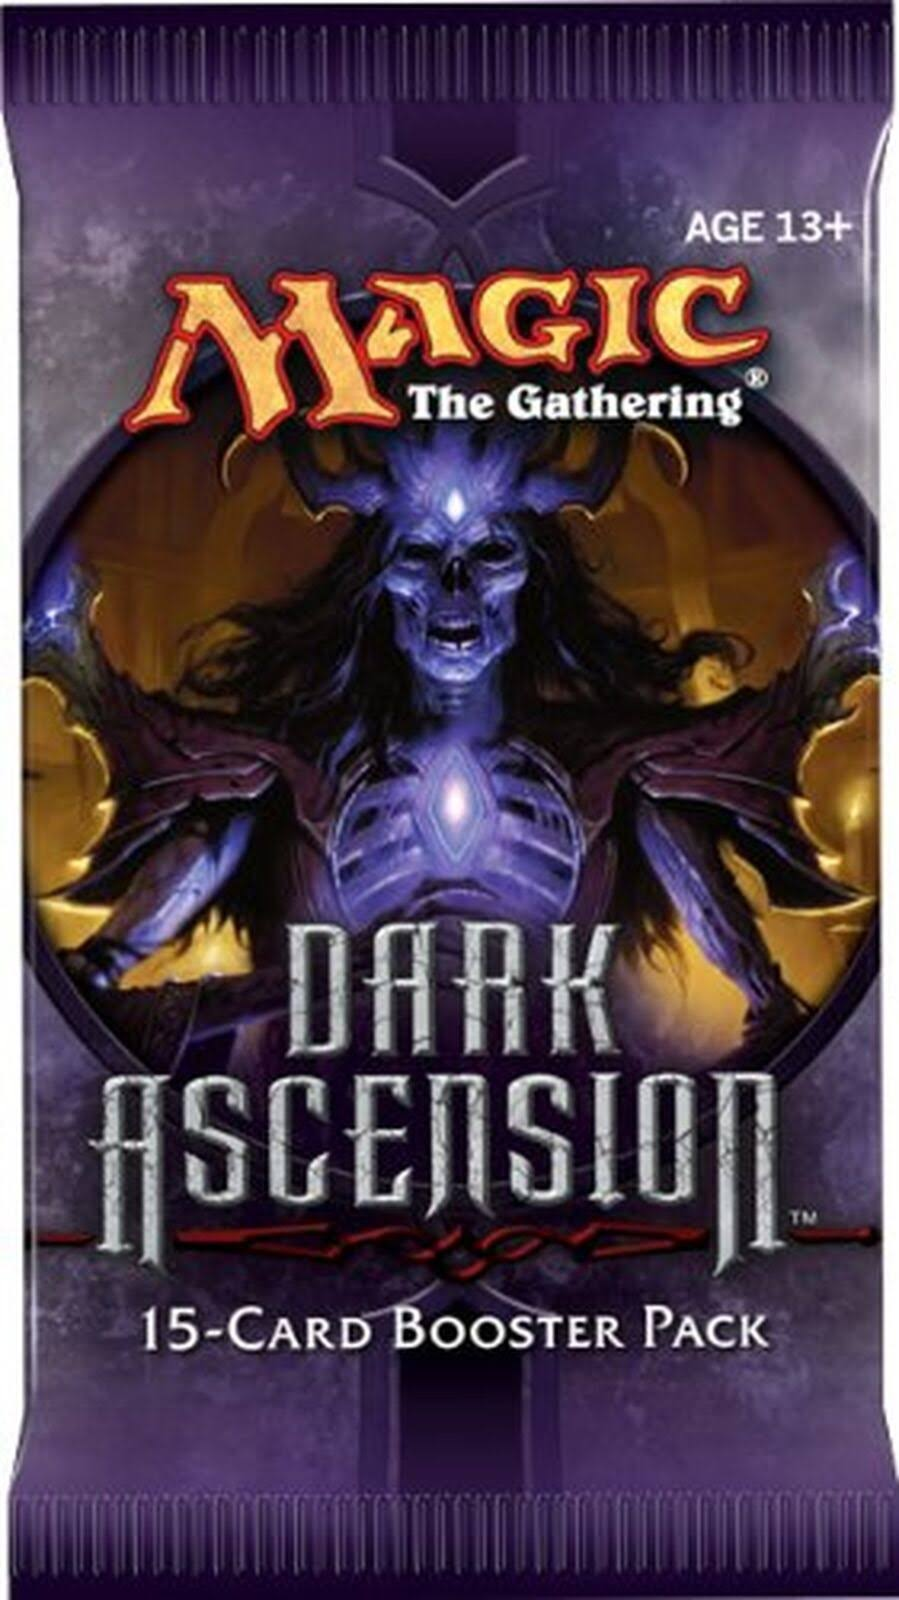 Magic the Gathering Trading ard Game - Dark Ascension Booster Pack